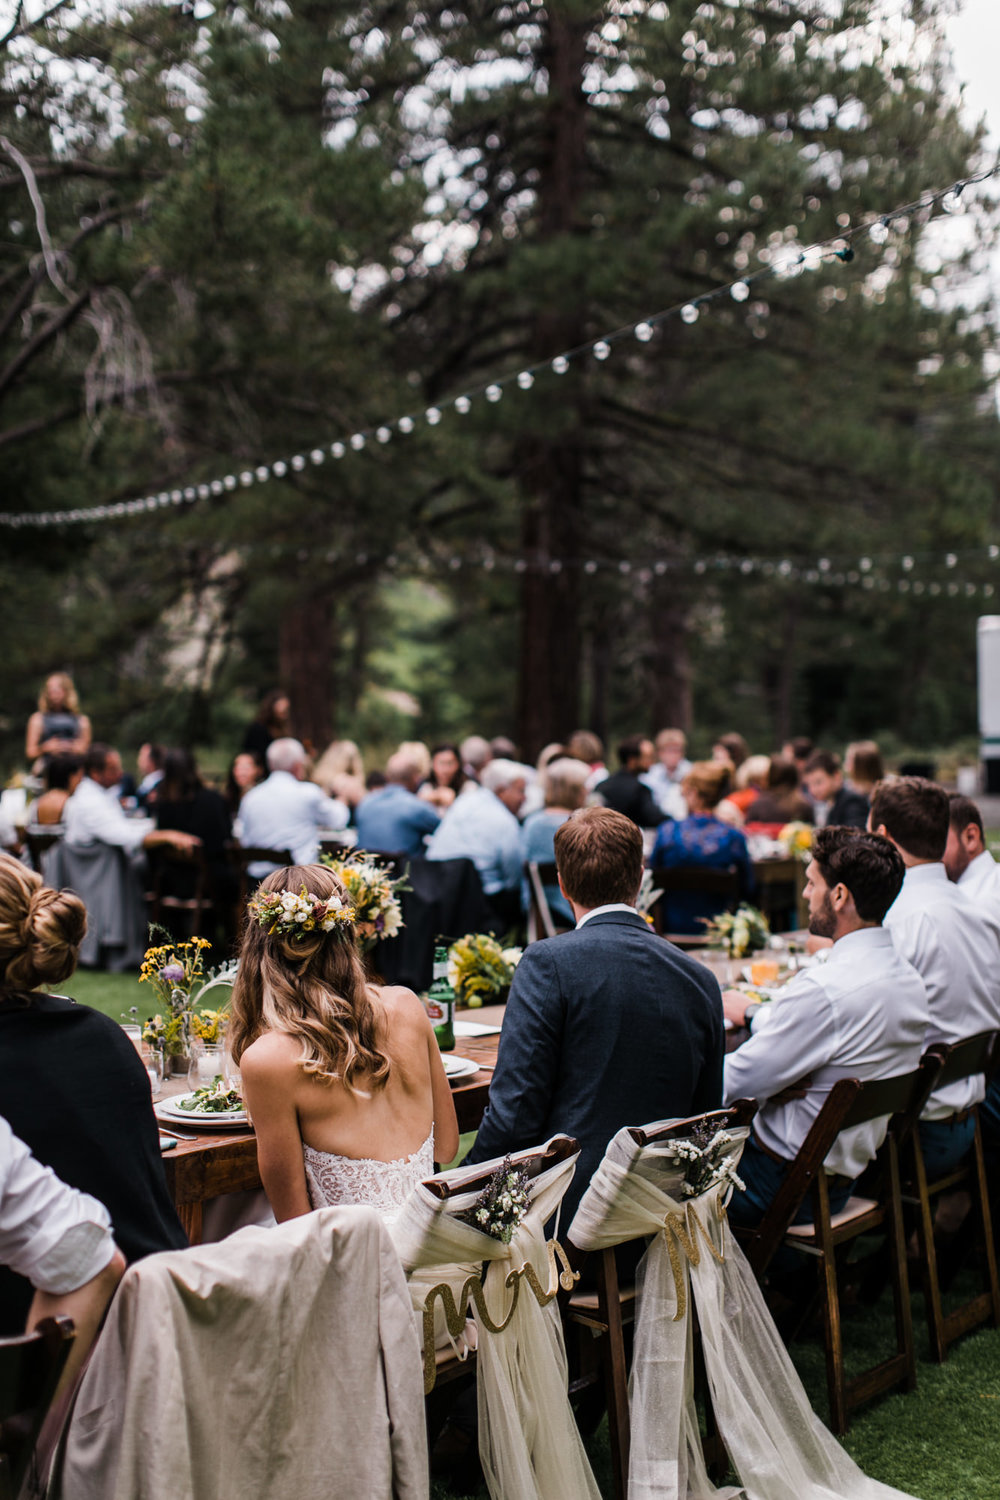 intimate outdoor wedding reception near lake tahoe | destination adventure wedding photographers | the hearnes adventure photography | www.thehearnes.com